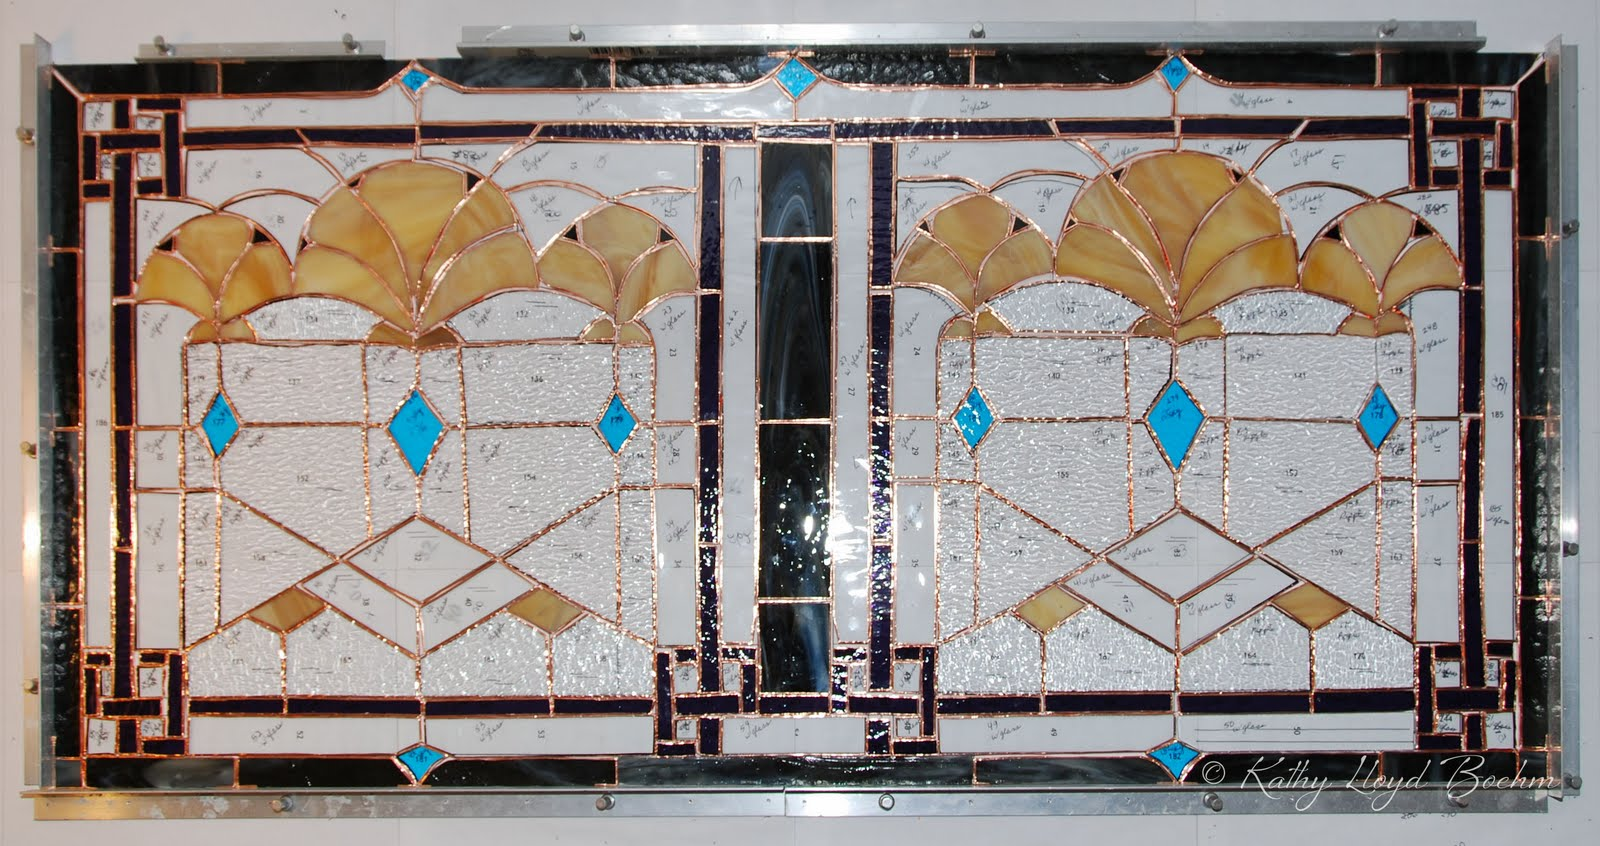 Boehm stained glass blog art deco stained glass window foiled for Art deco glass windows